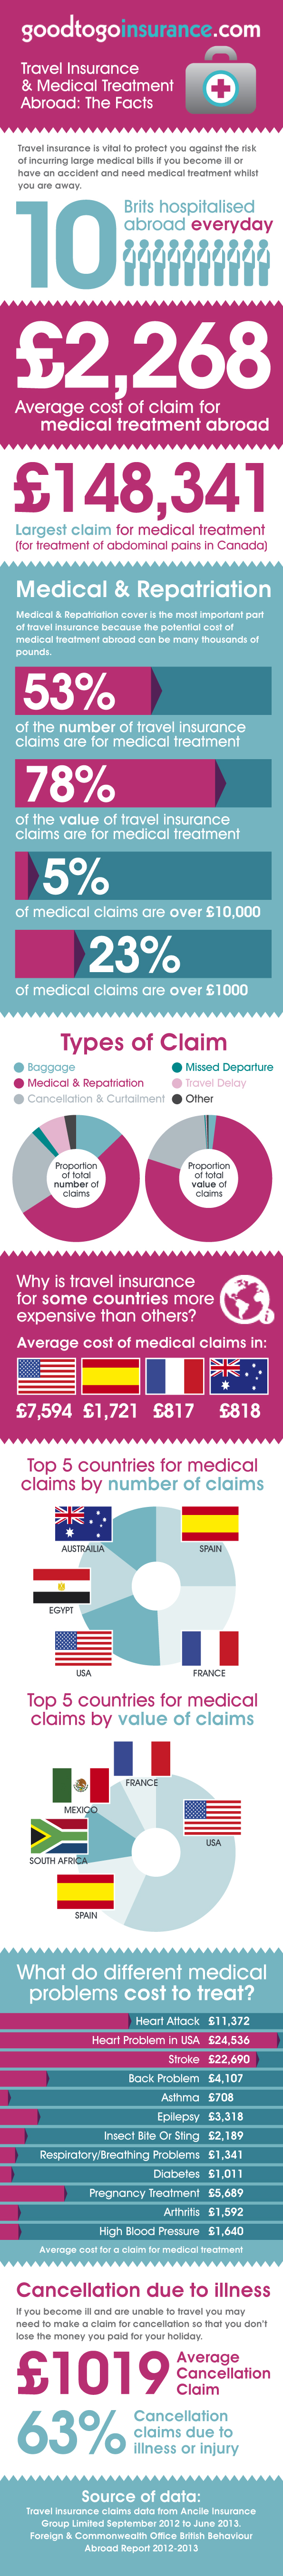 Travel insurance and medical conditions: What would the cost of medical treatment abroad be if you are uninsured?